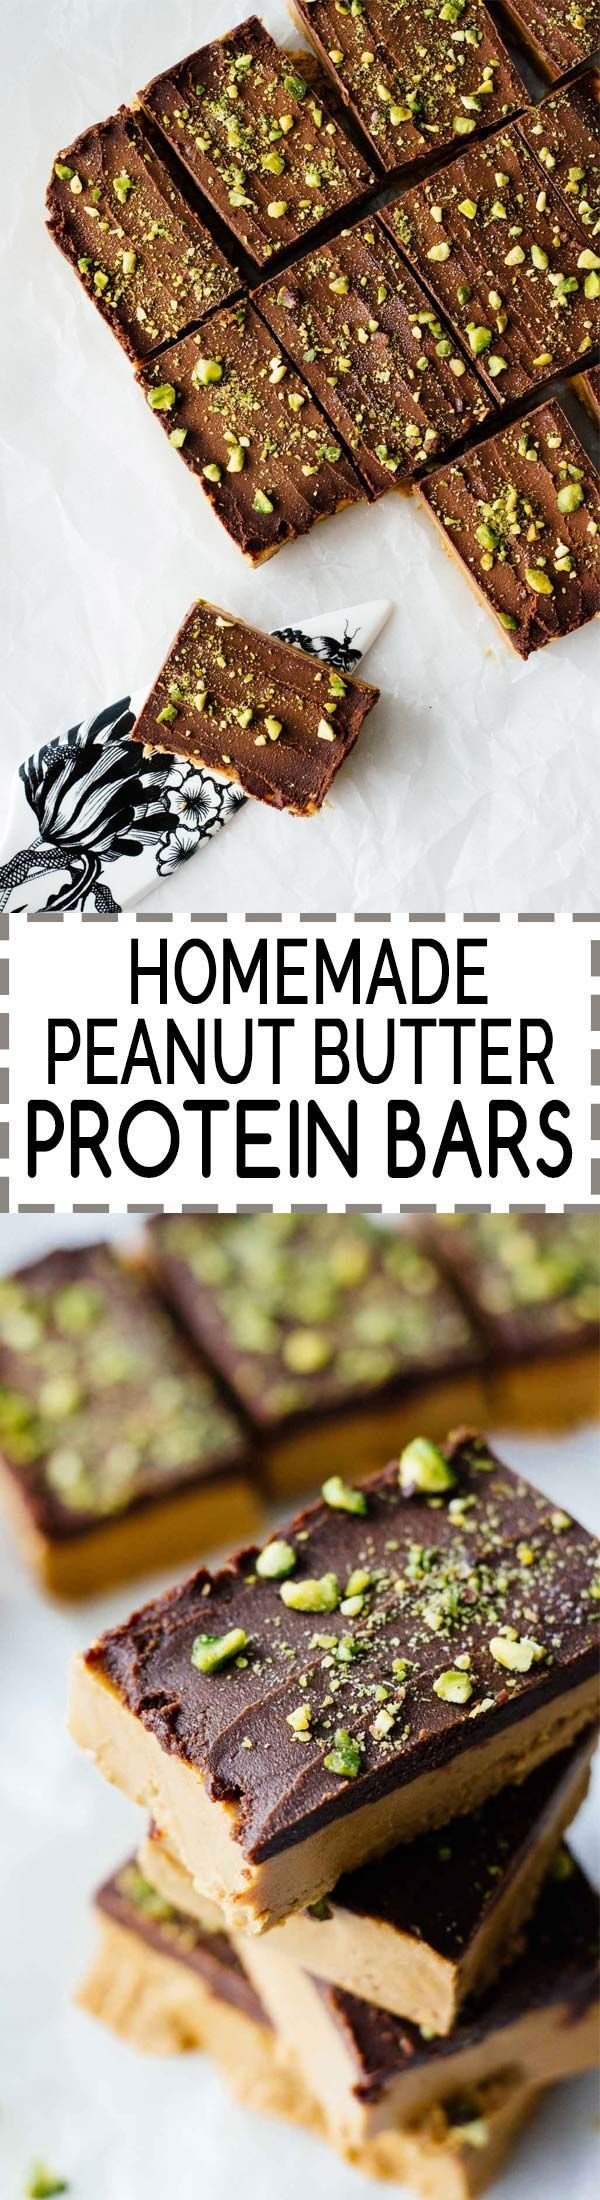 Easy Homemade Peanut Butter Protein Bars! Vegan, gluten-free, refined sugar free, 5 ingredients. :)